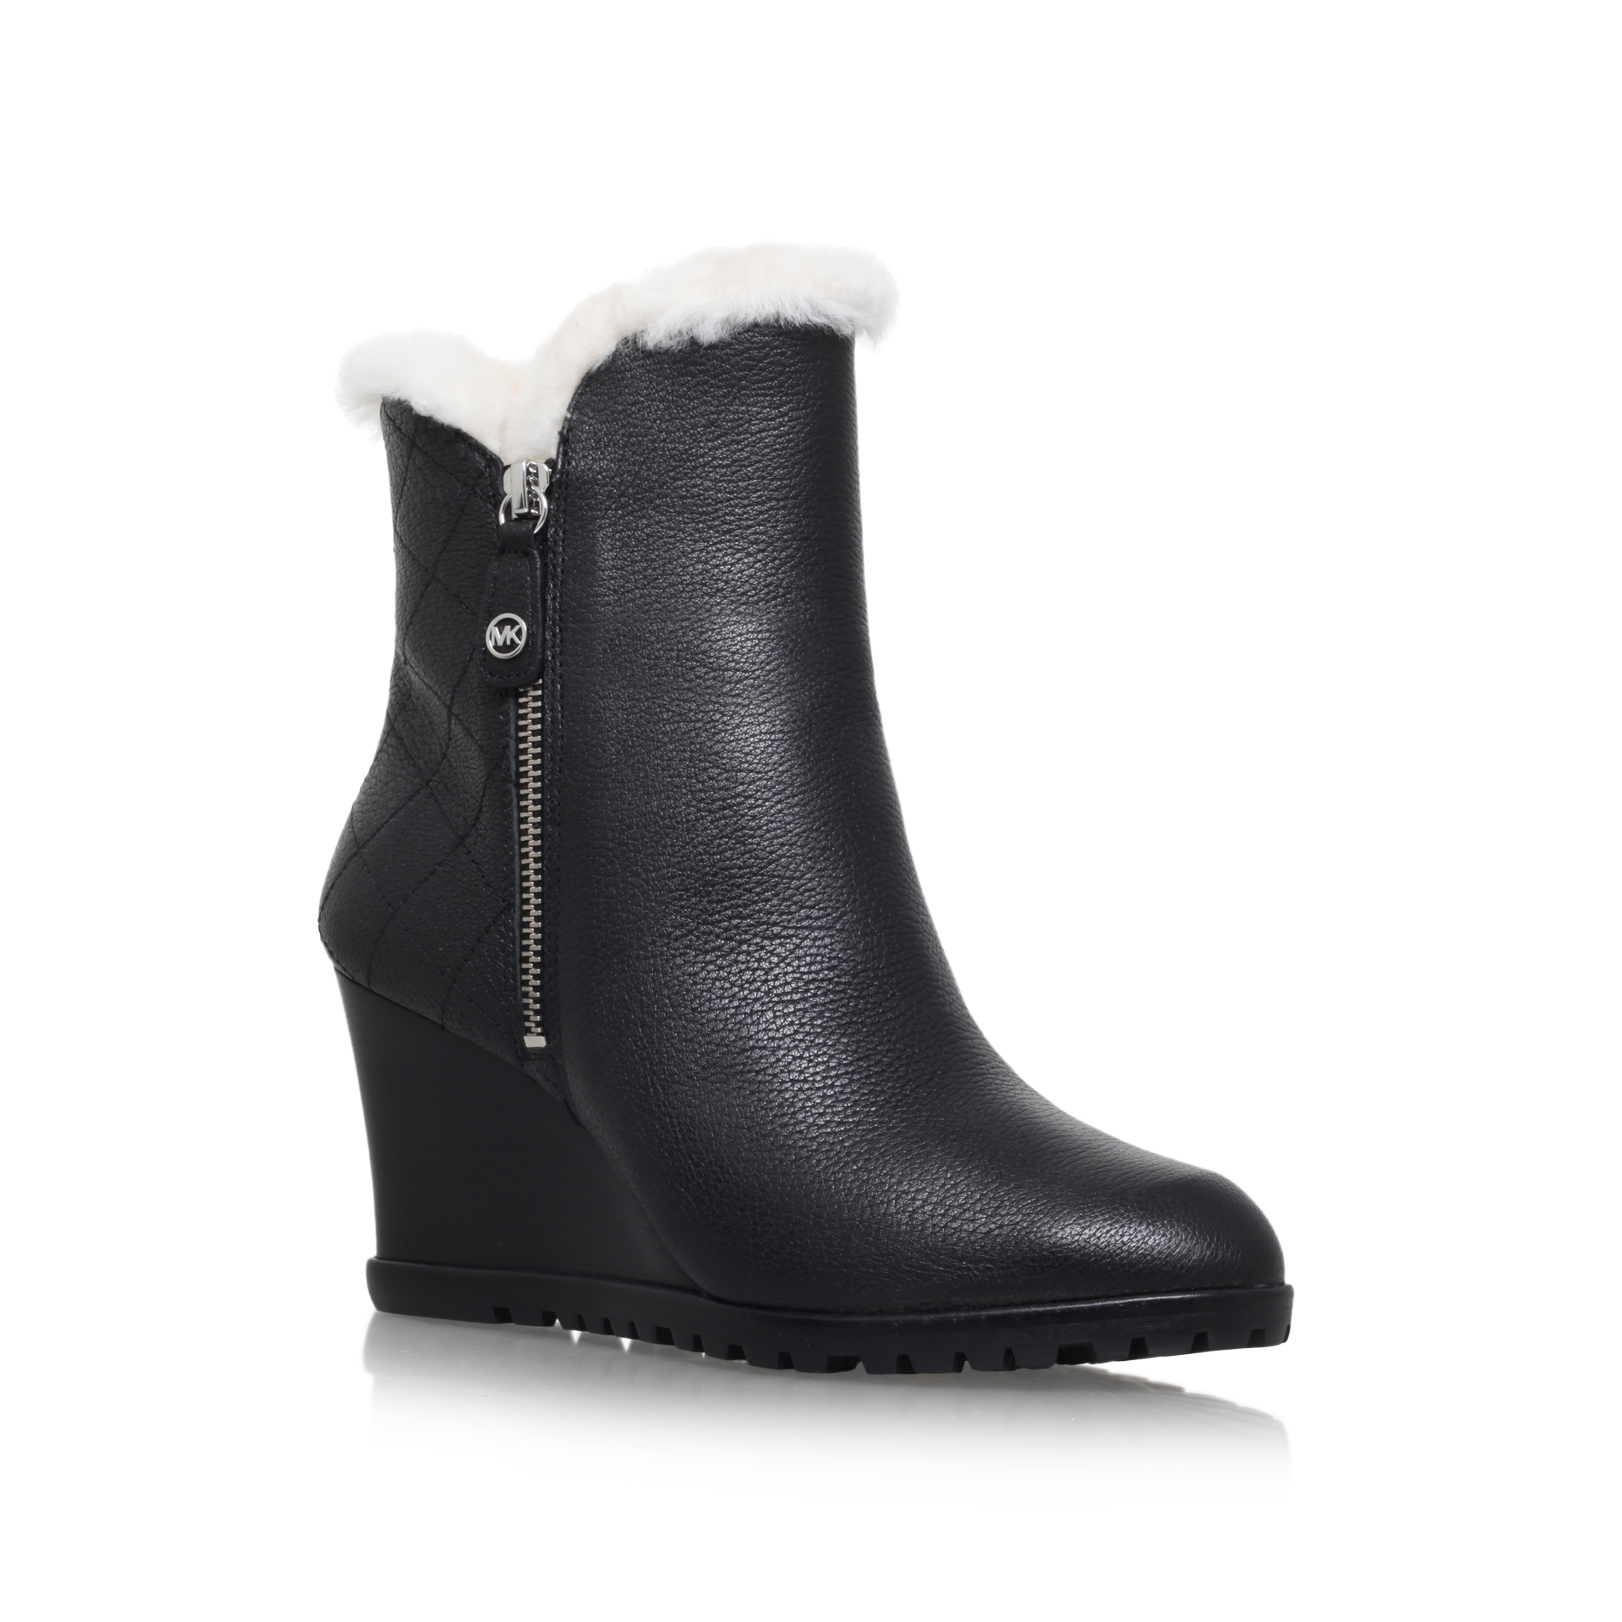 WHITAKER WEDGE BOOT